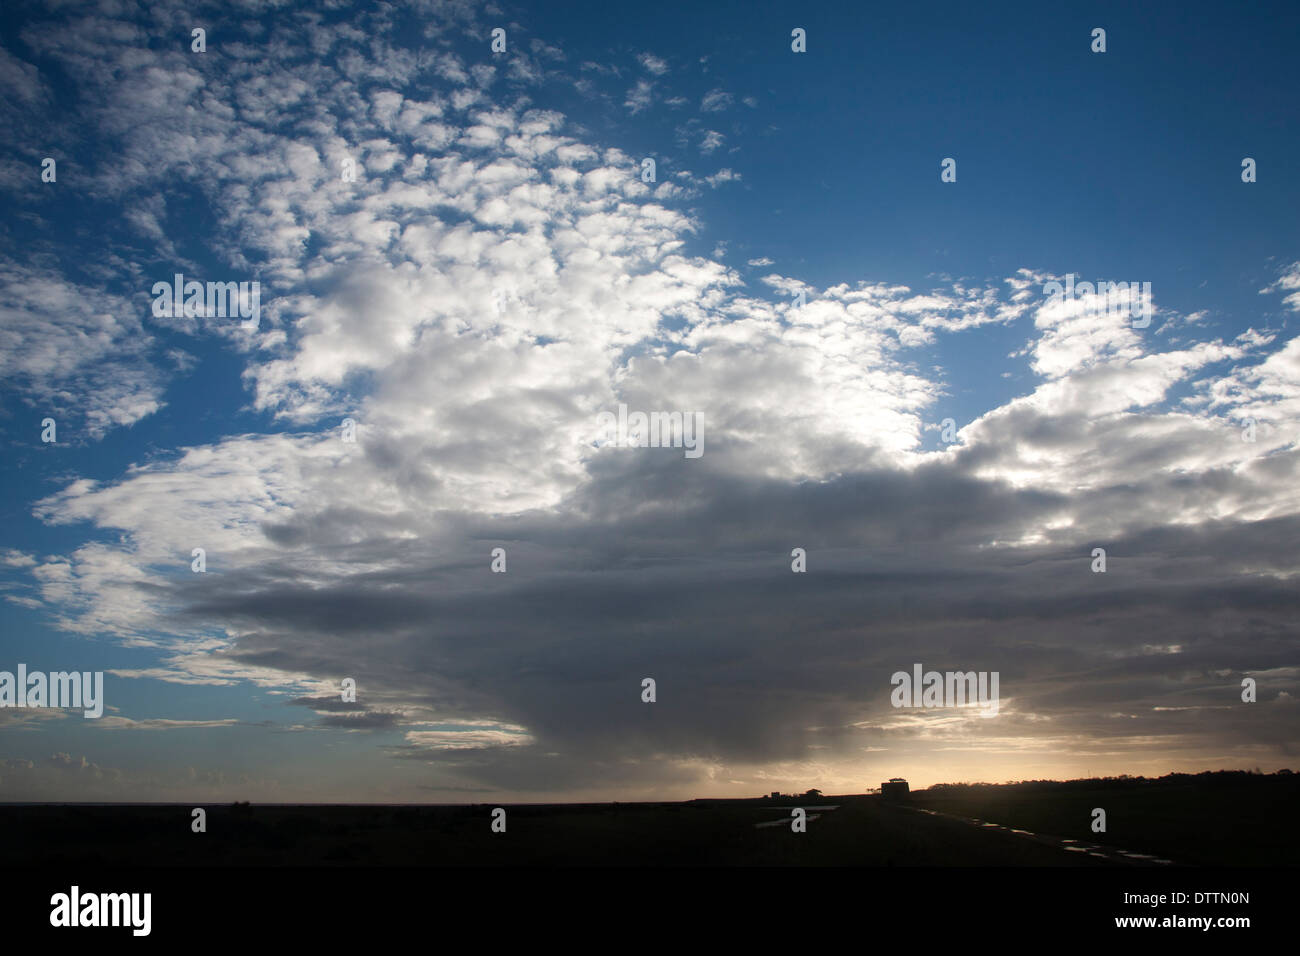 Frontal clouds moving over the sky blocking out the sun at Bawdsey, Suffolk, England - Stock Image